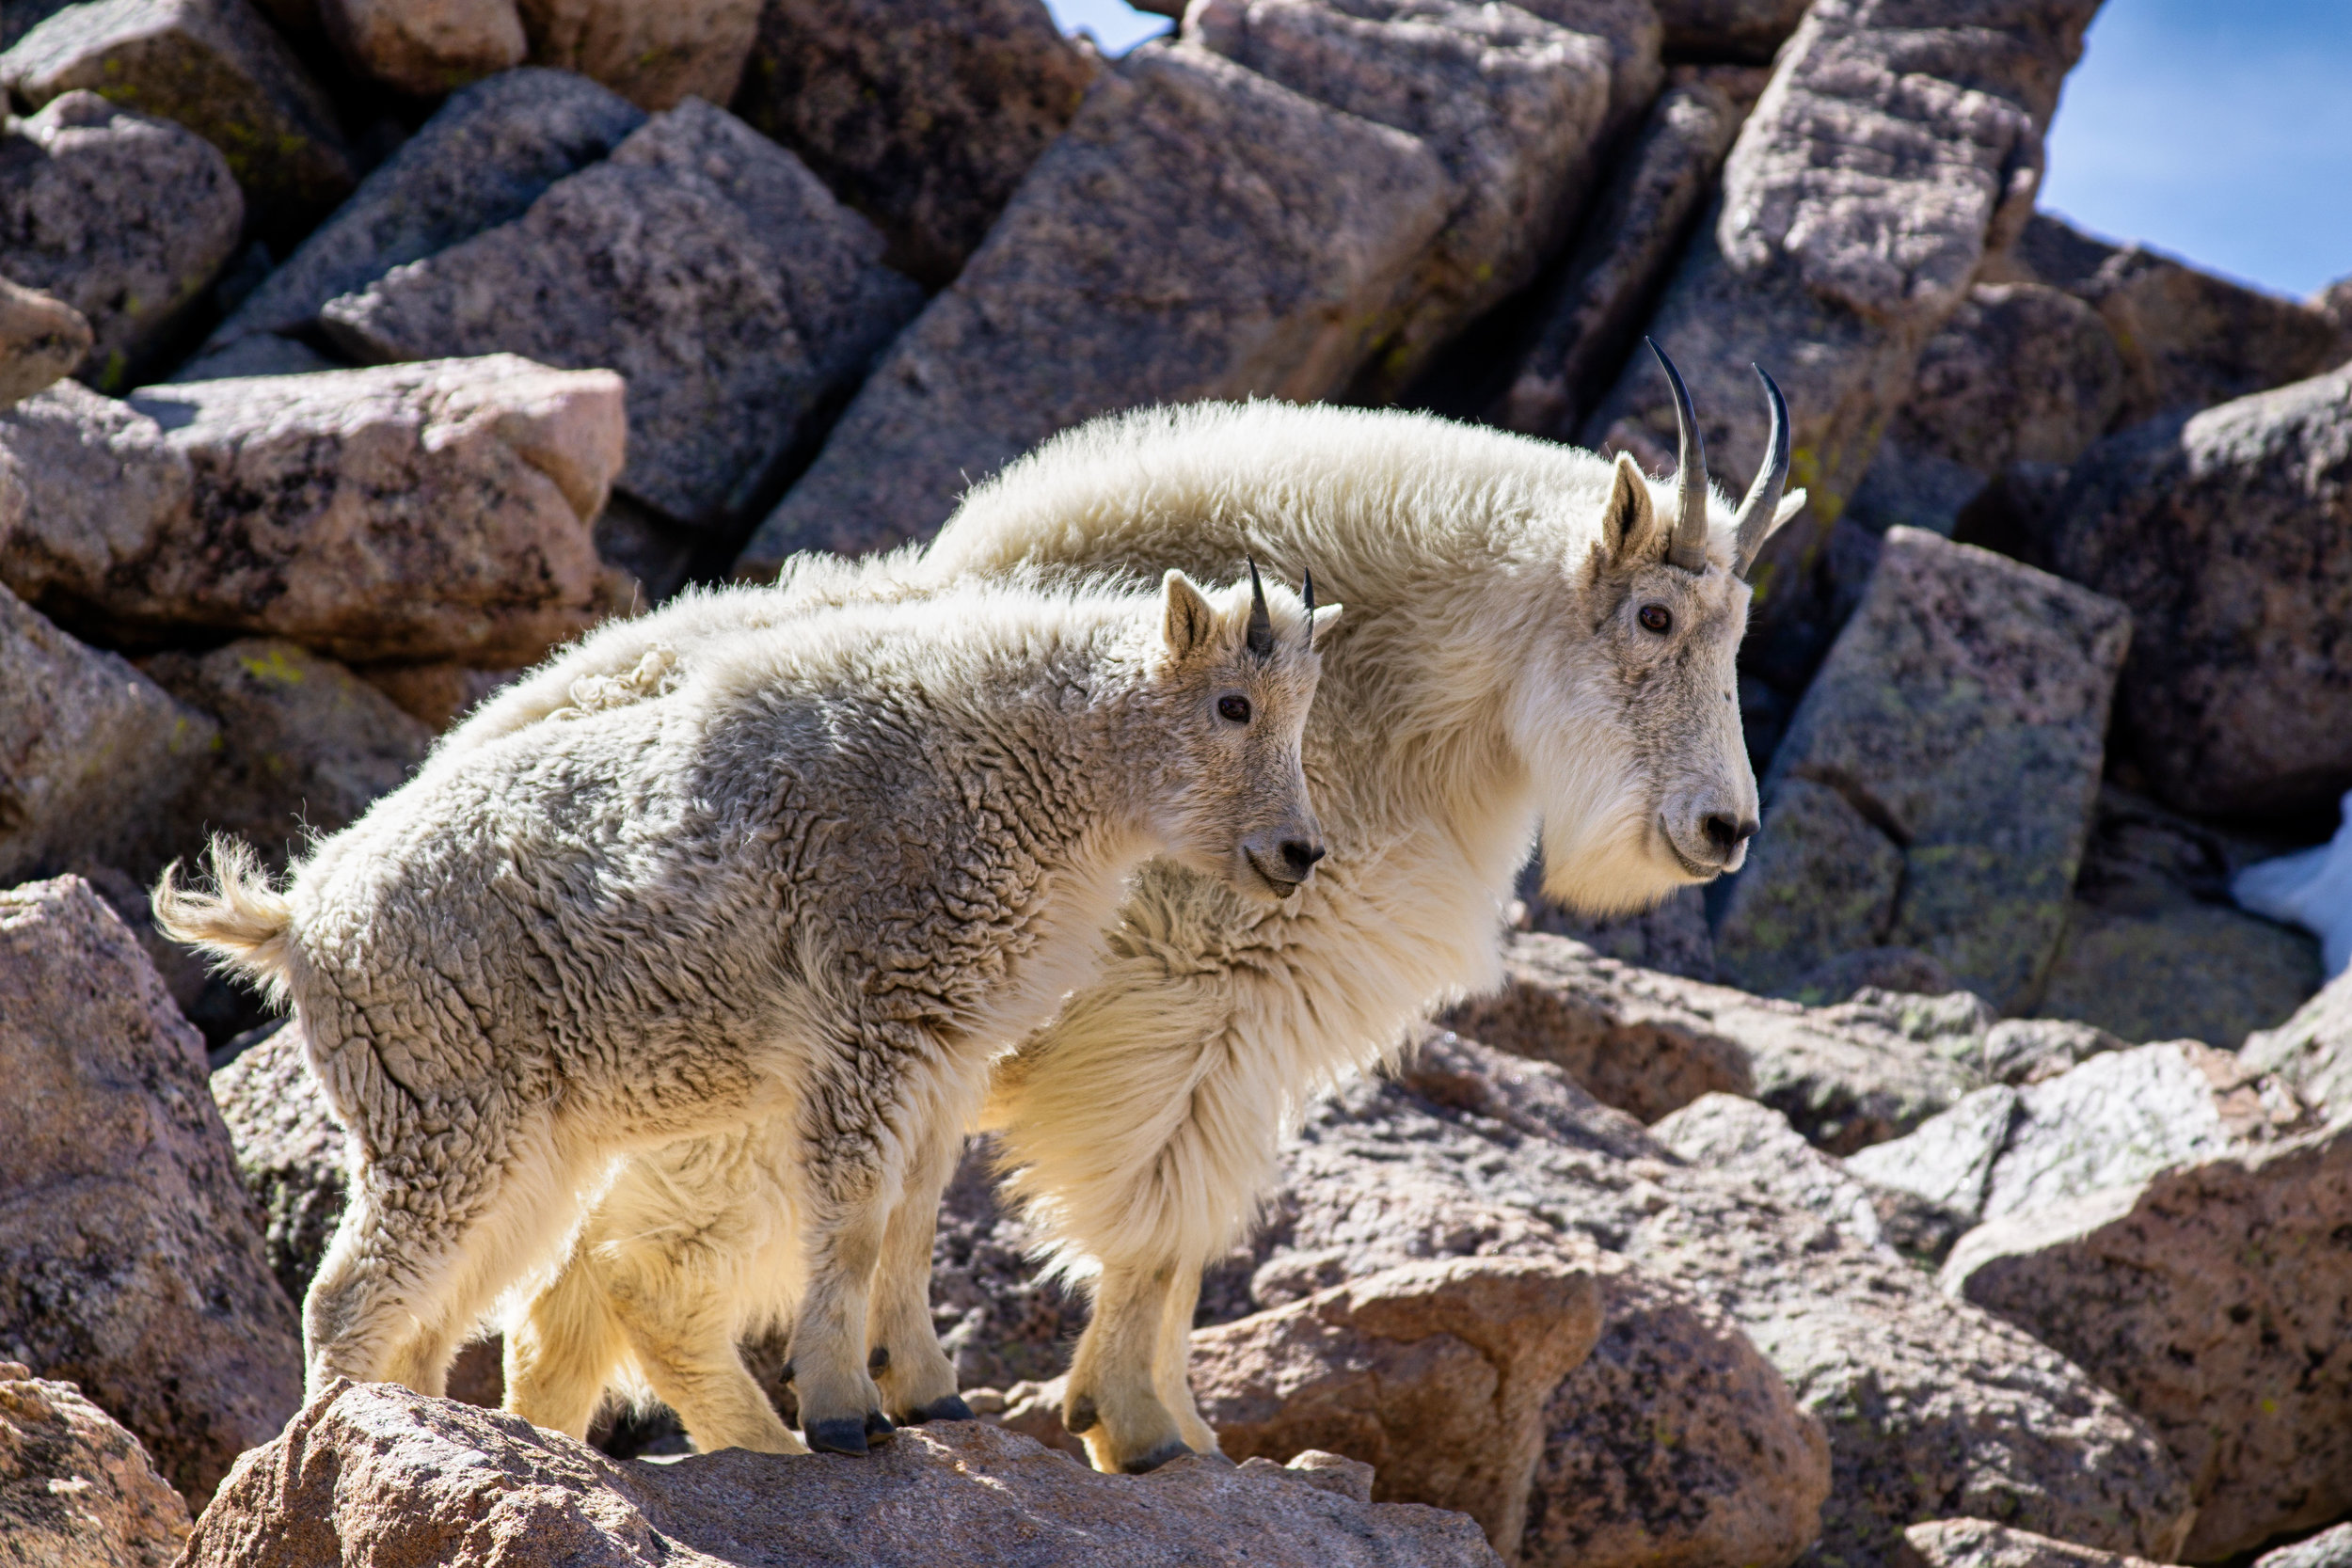 vickygood_travel_photography_colorado_mt.evans_goats6.jpg